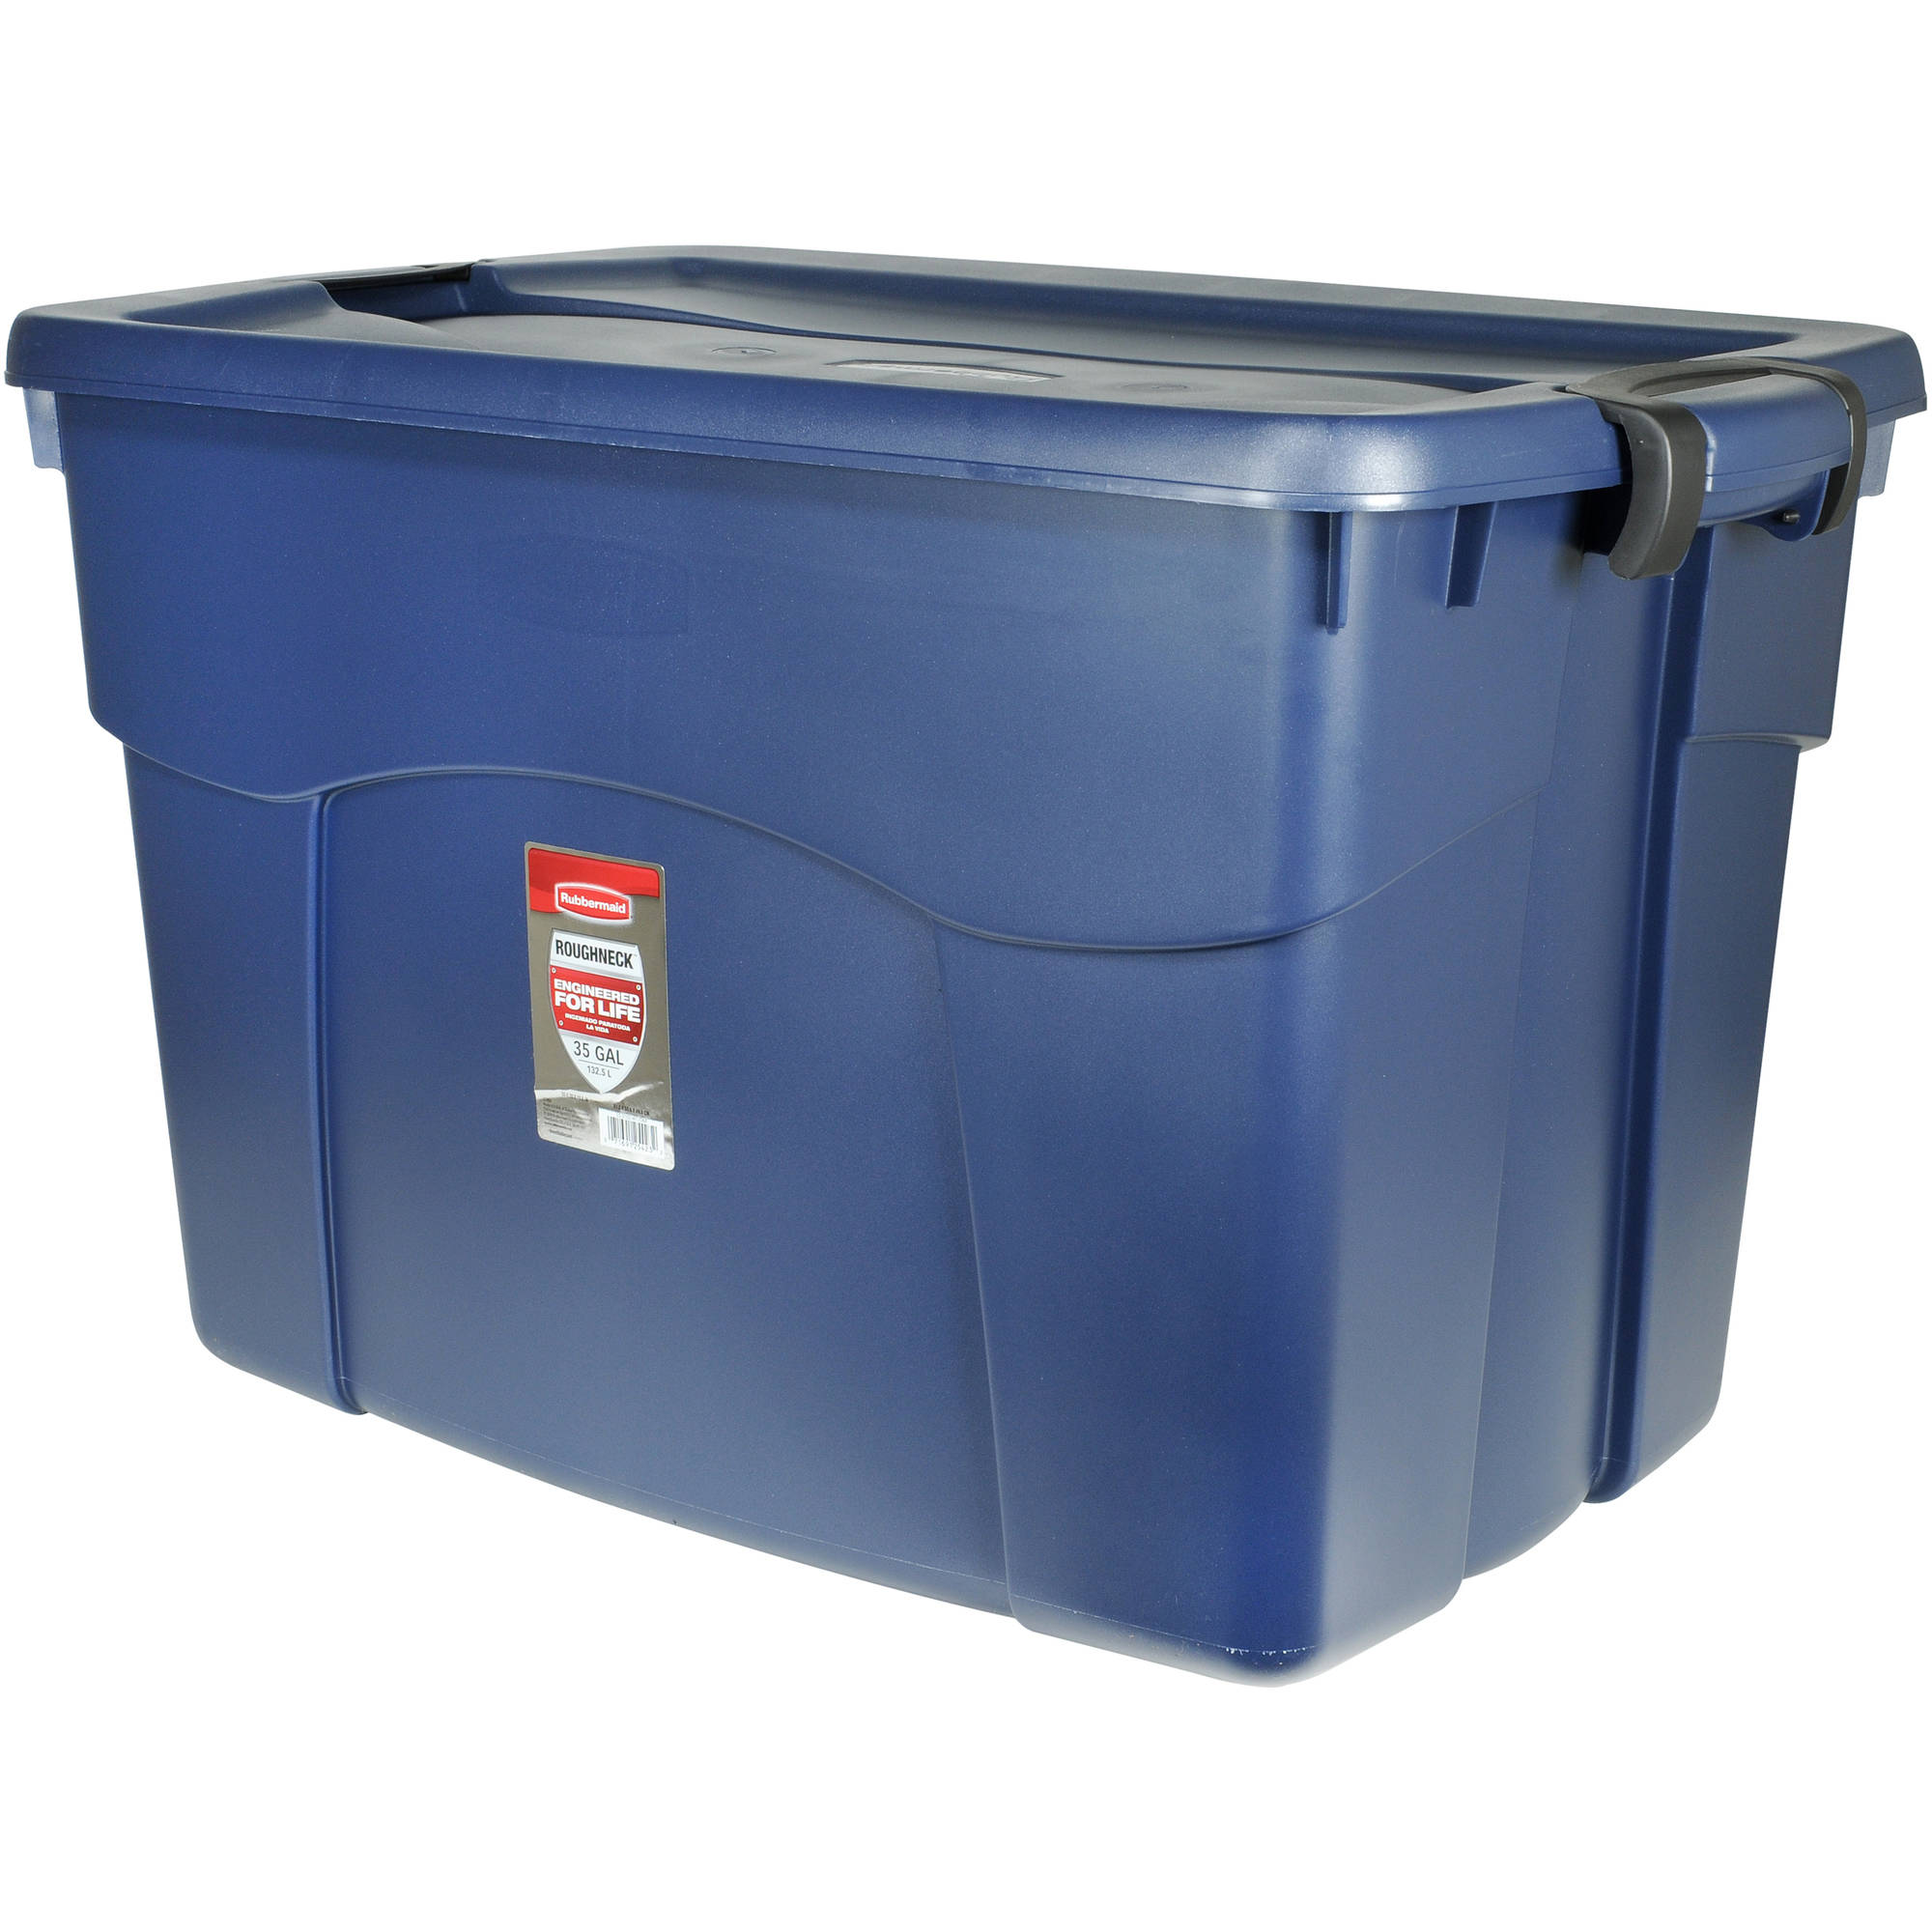 Rubbermaid Roughneck Latching Tote, 140 Qt (35 Gal), Blue, Set of 6